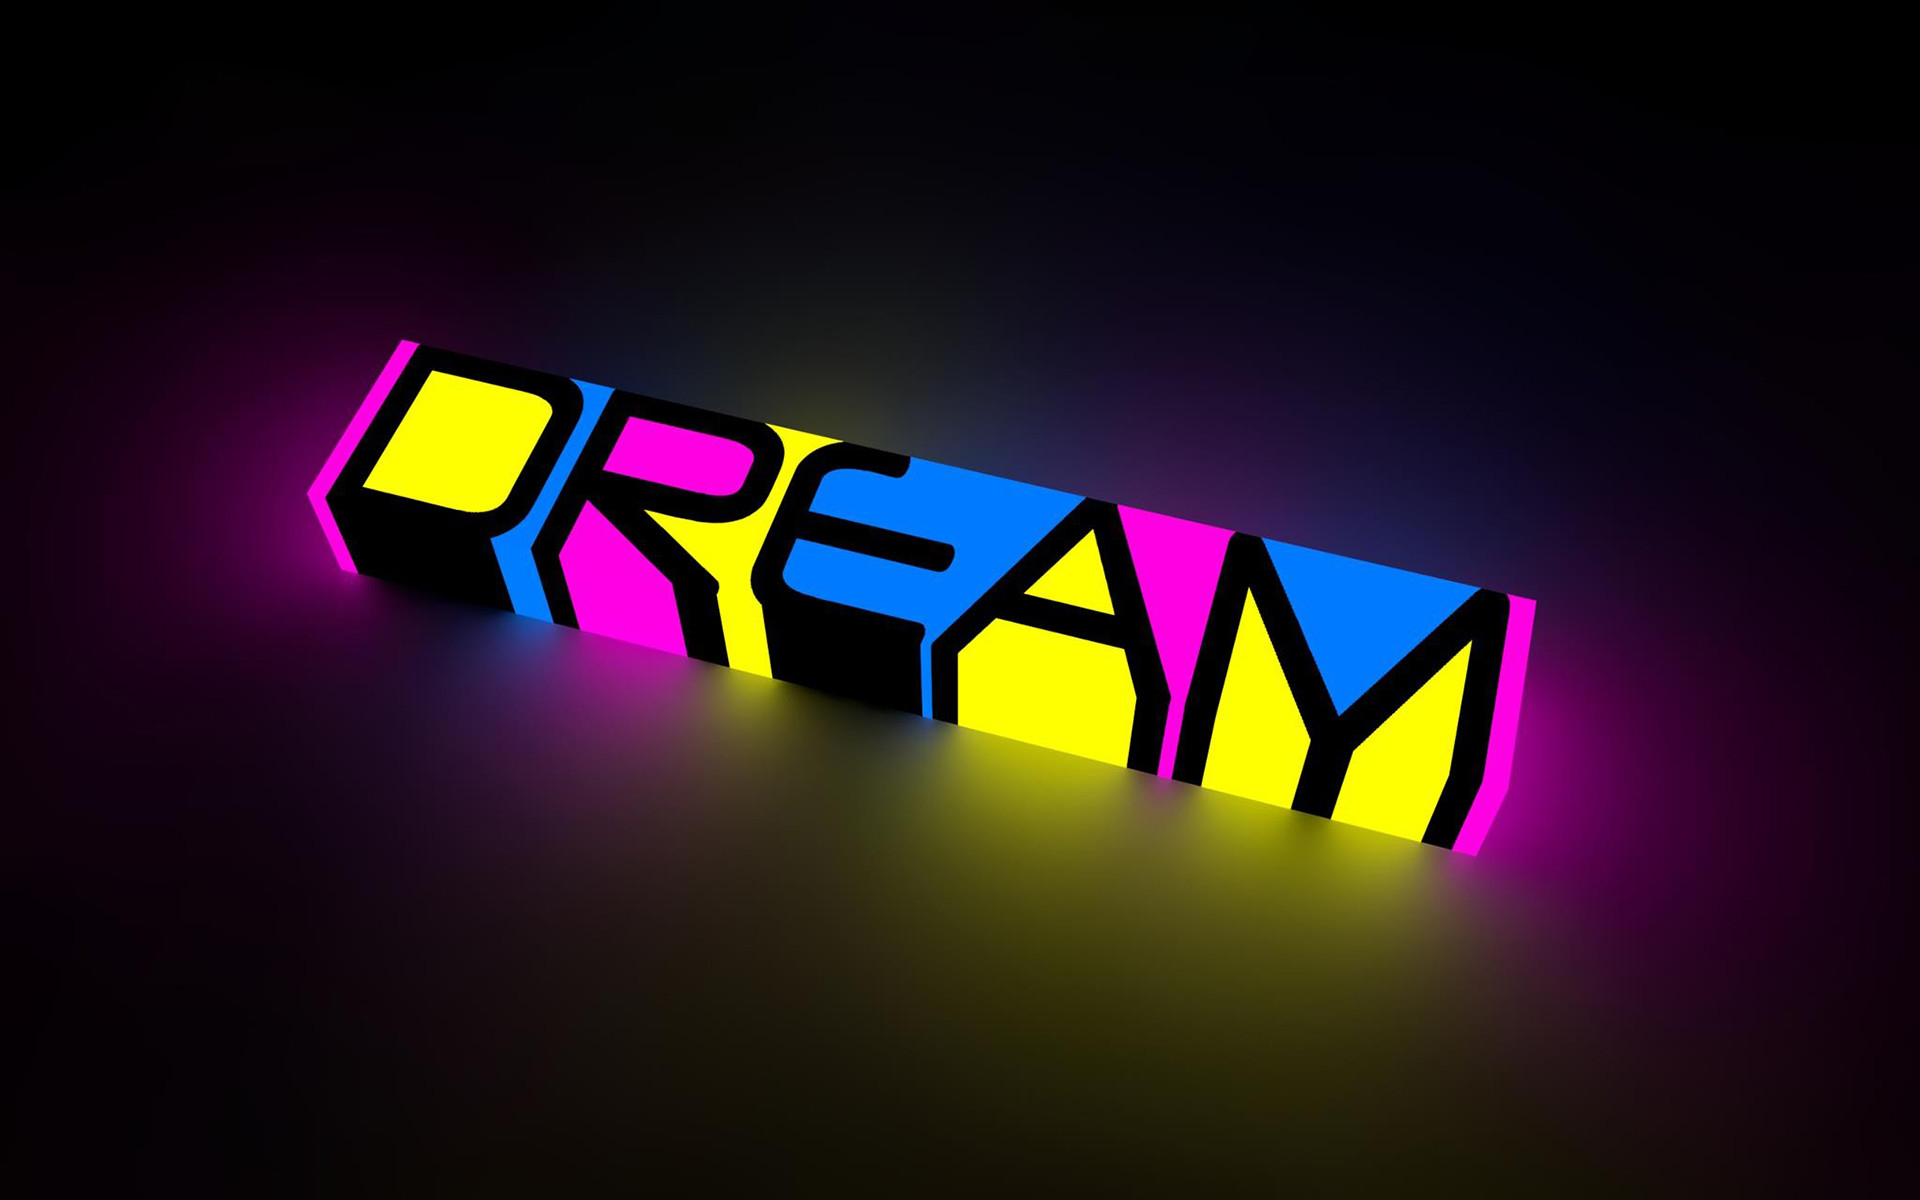 abstract dream color neon bright words letters motivational .